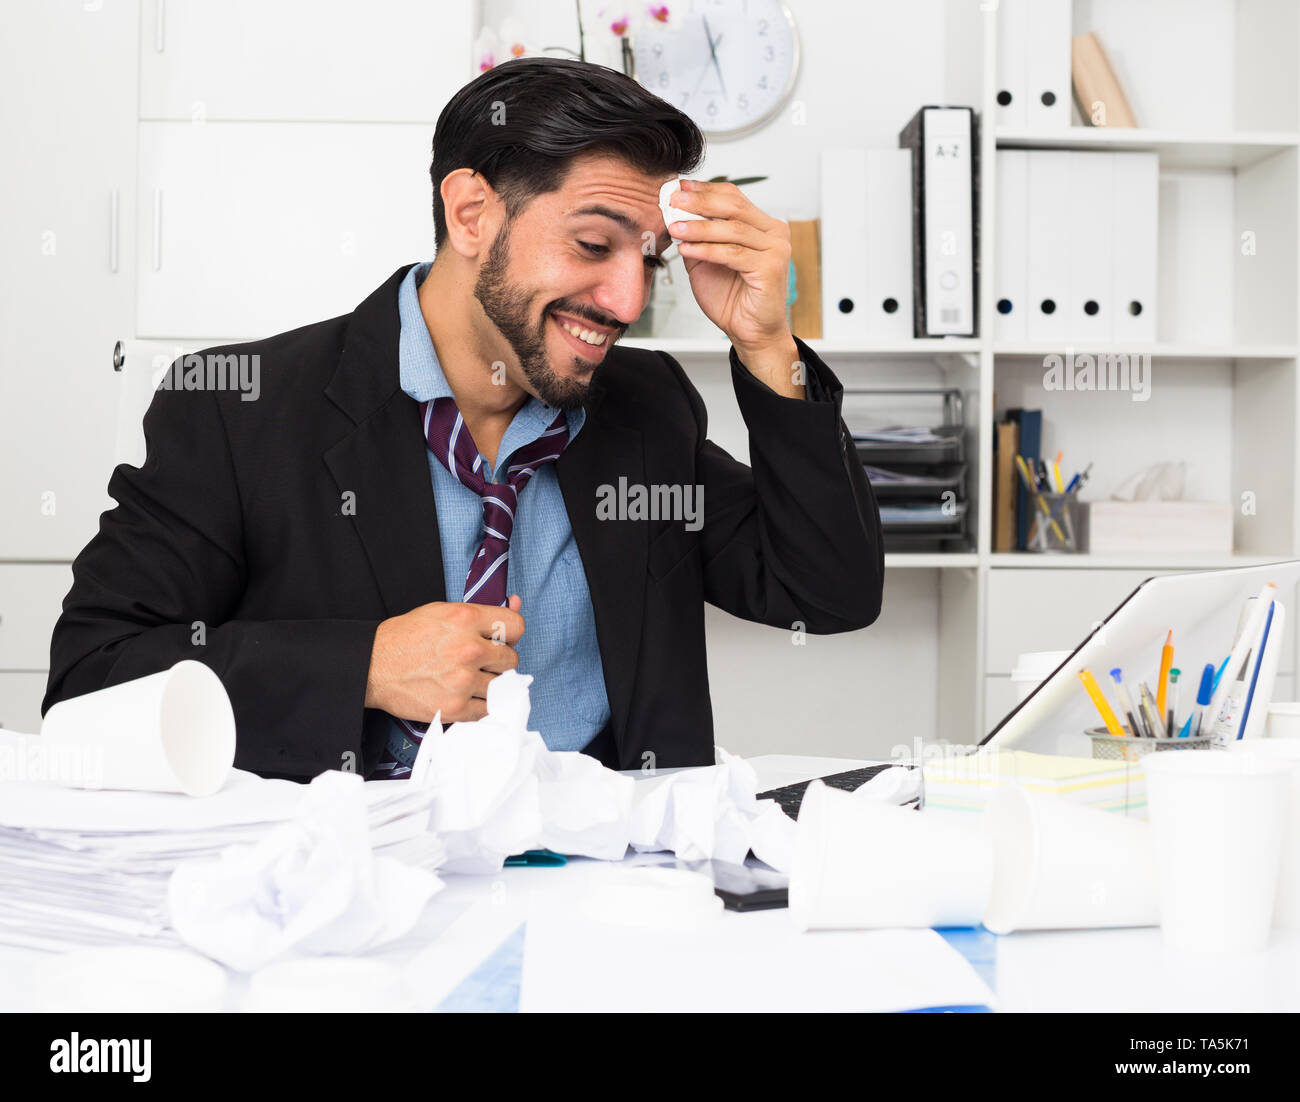 Spanish male worker is having complicated issue with project in office. - Stock Image